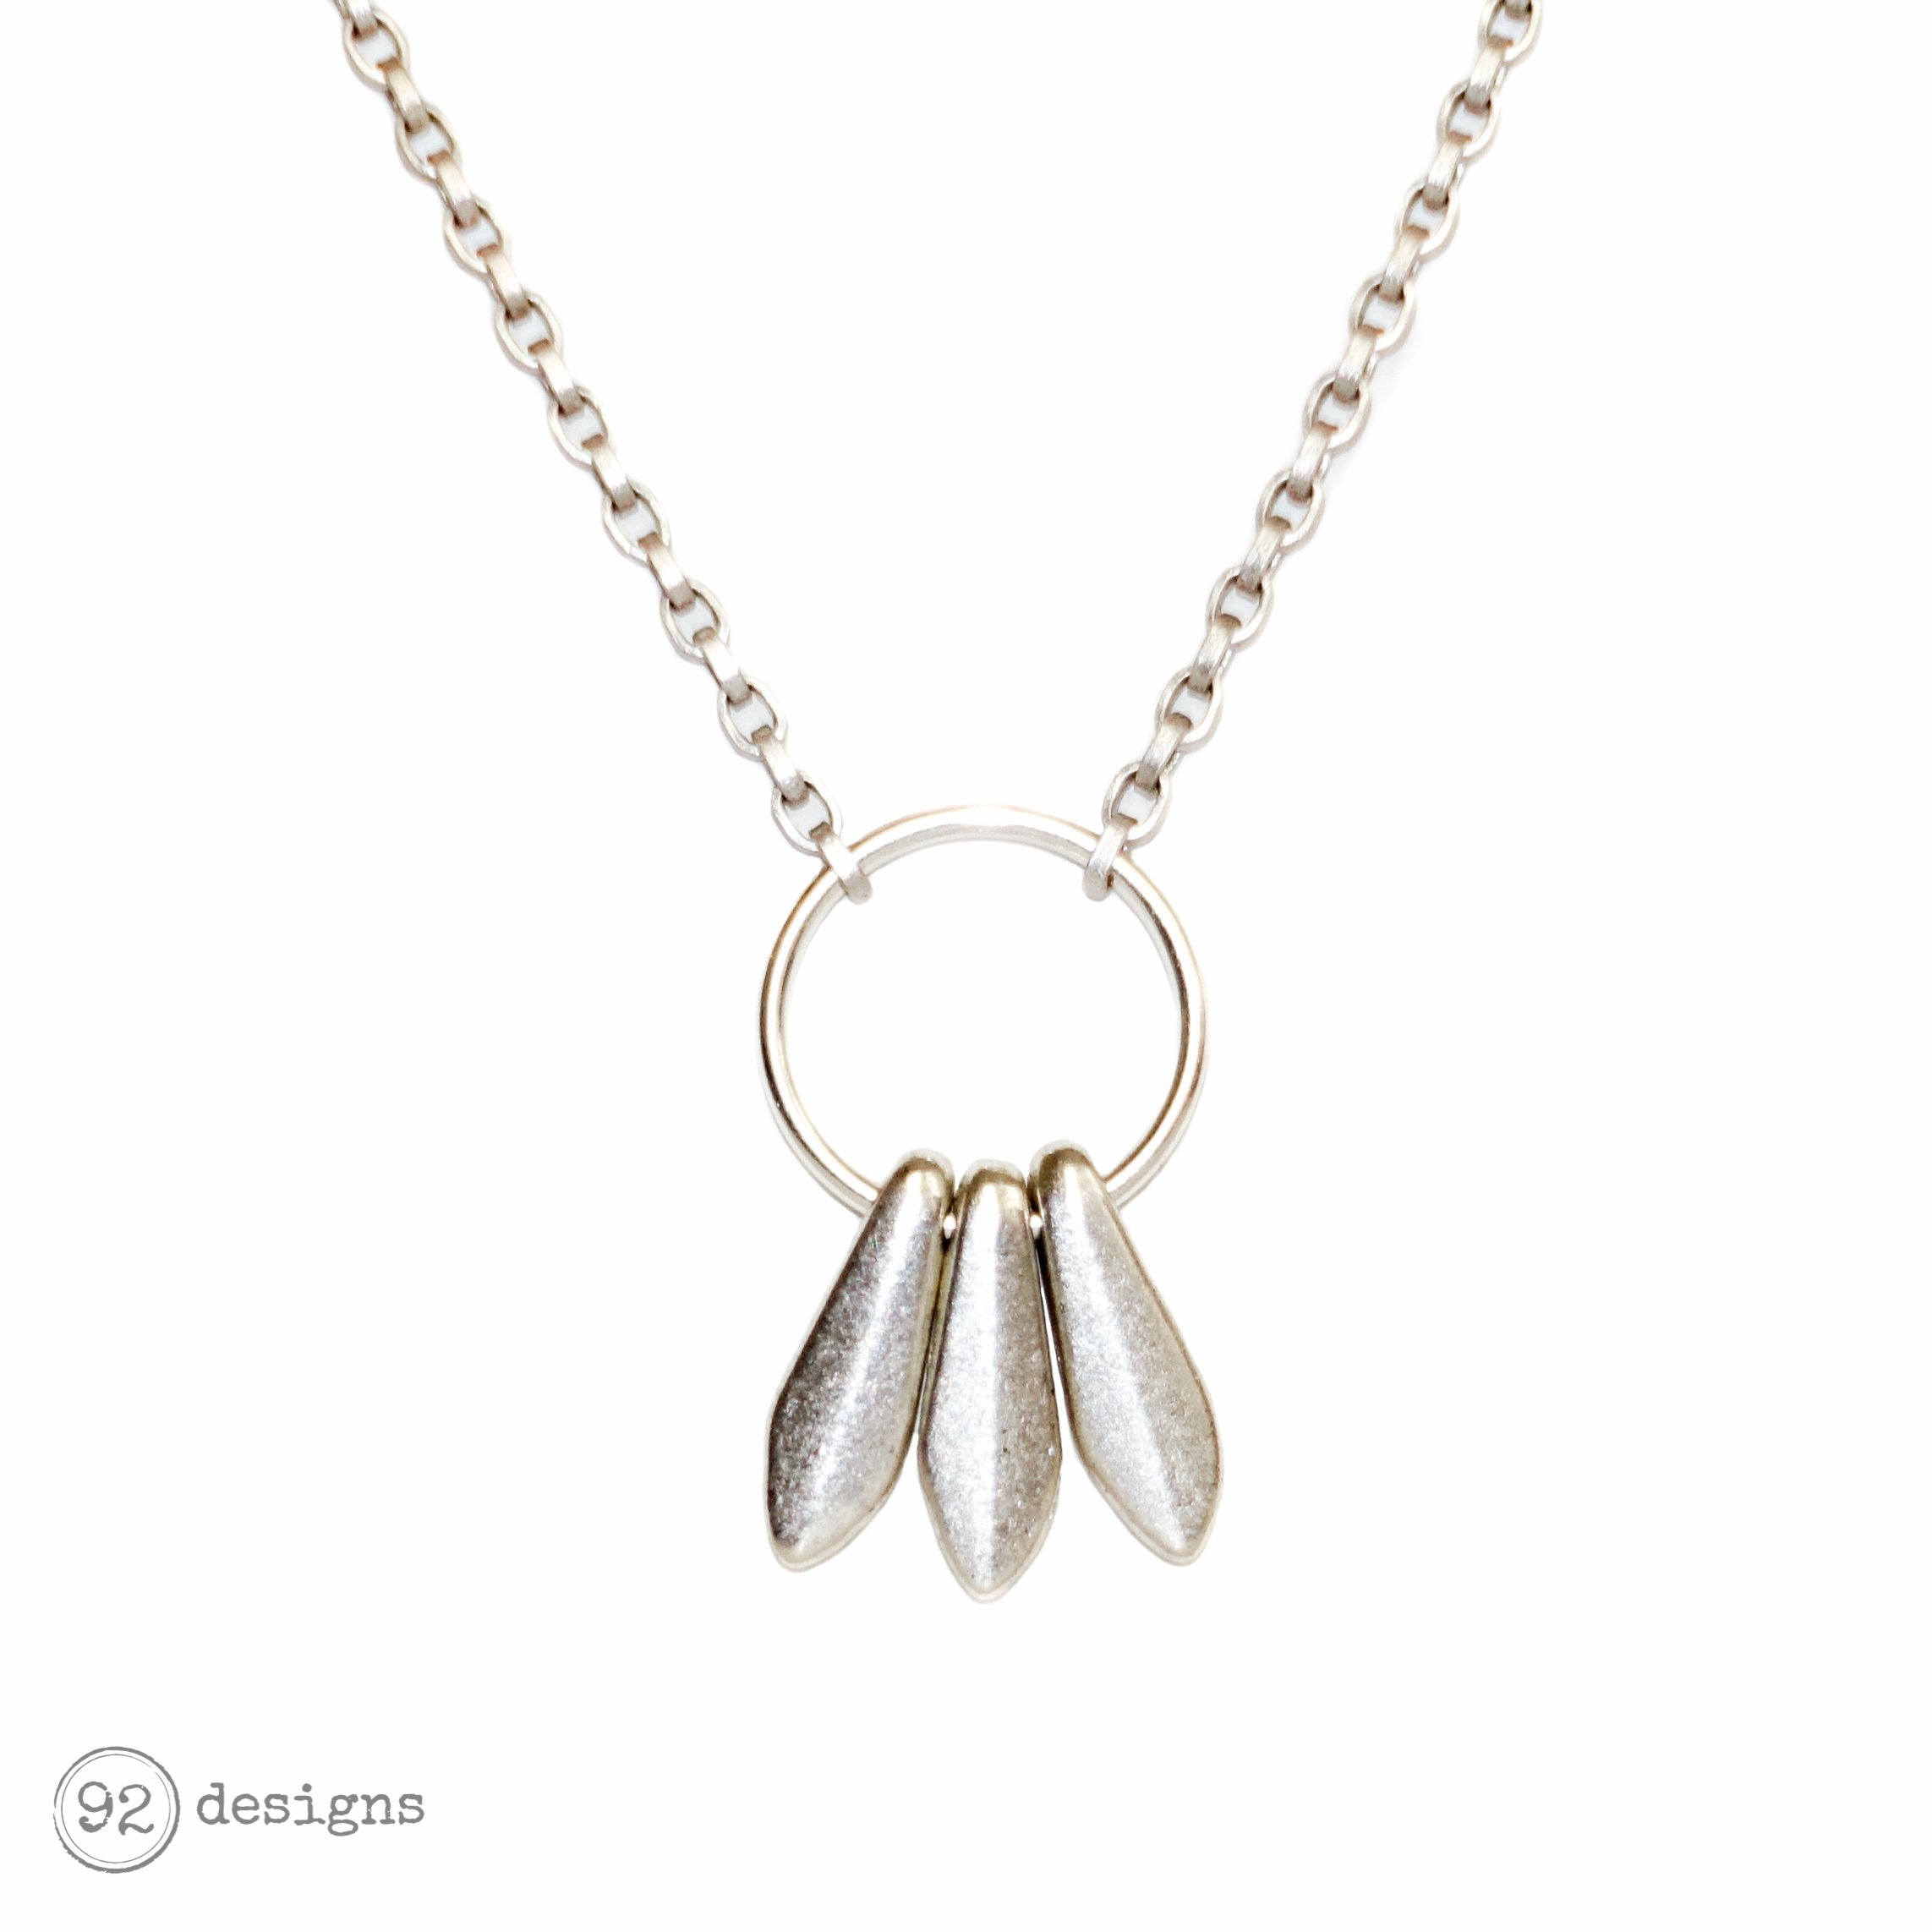 sterling nina online b pendant at leaves buynina johnlewis necklace lewis pdp main silver john com rsp